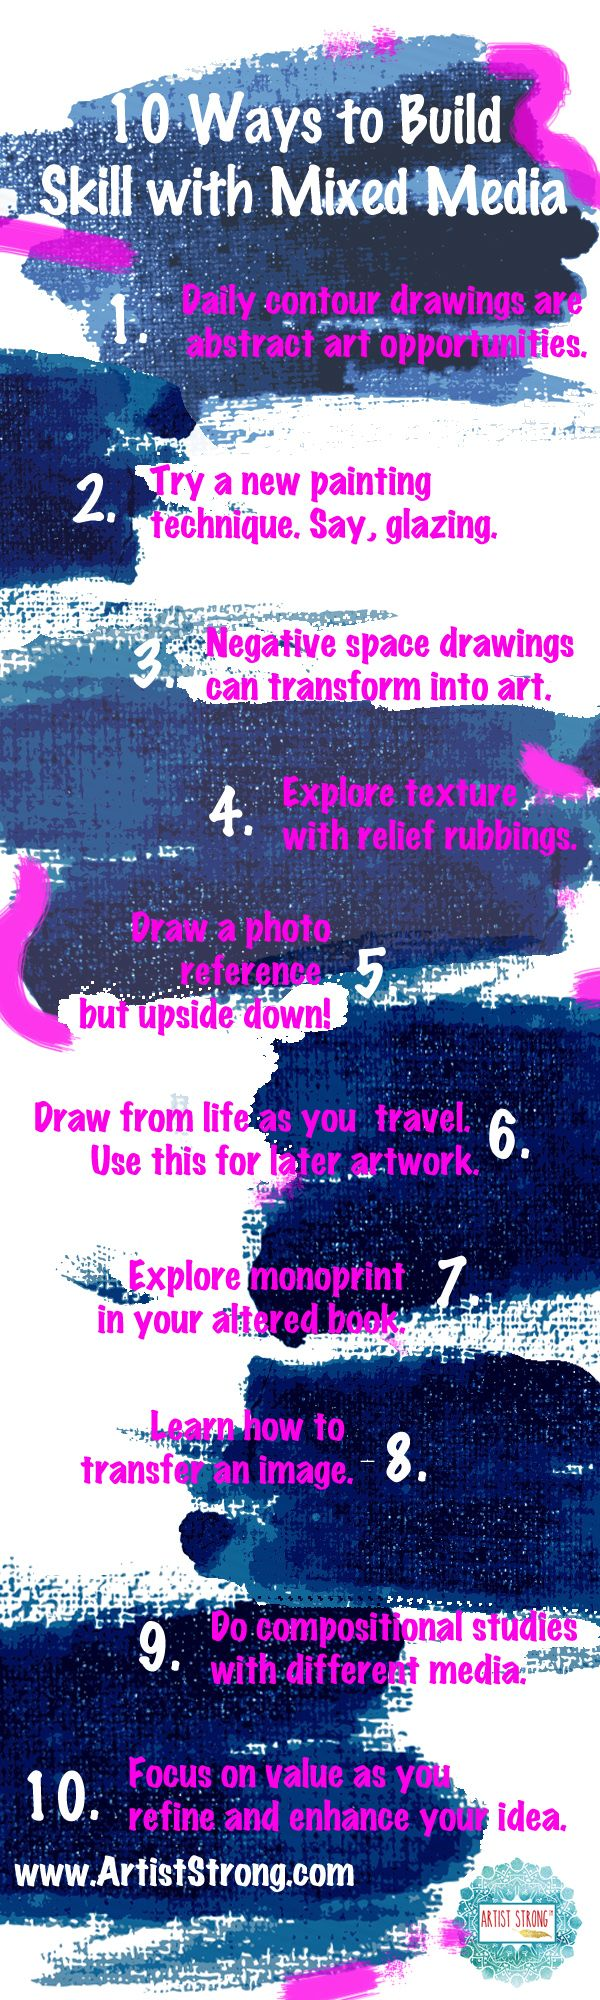 10 ways to build your skill using mixed media art | free art lessons | inner artist | art ideas